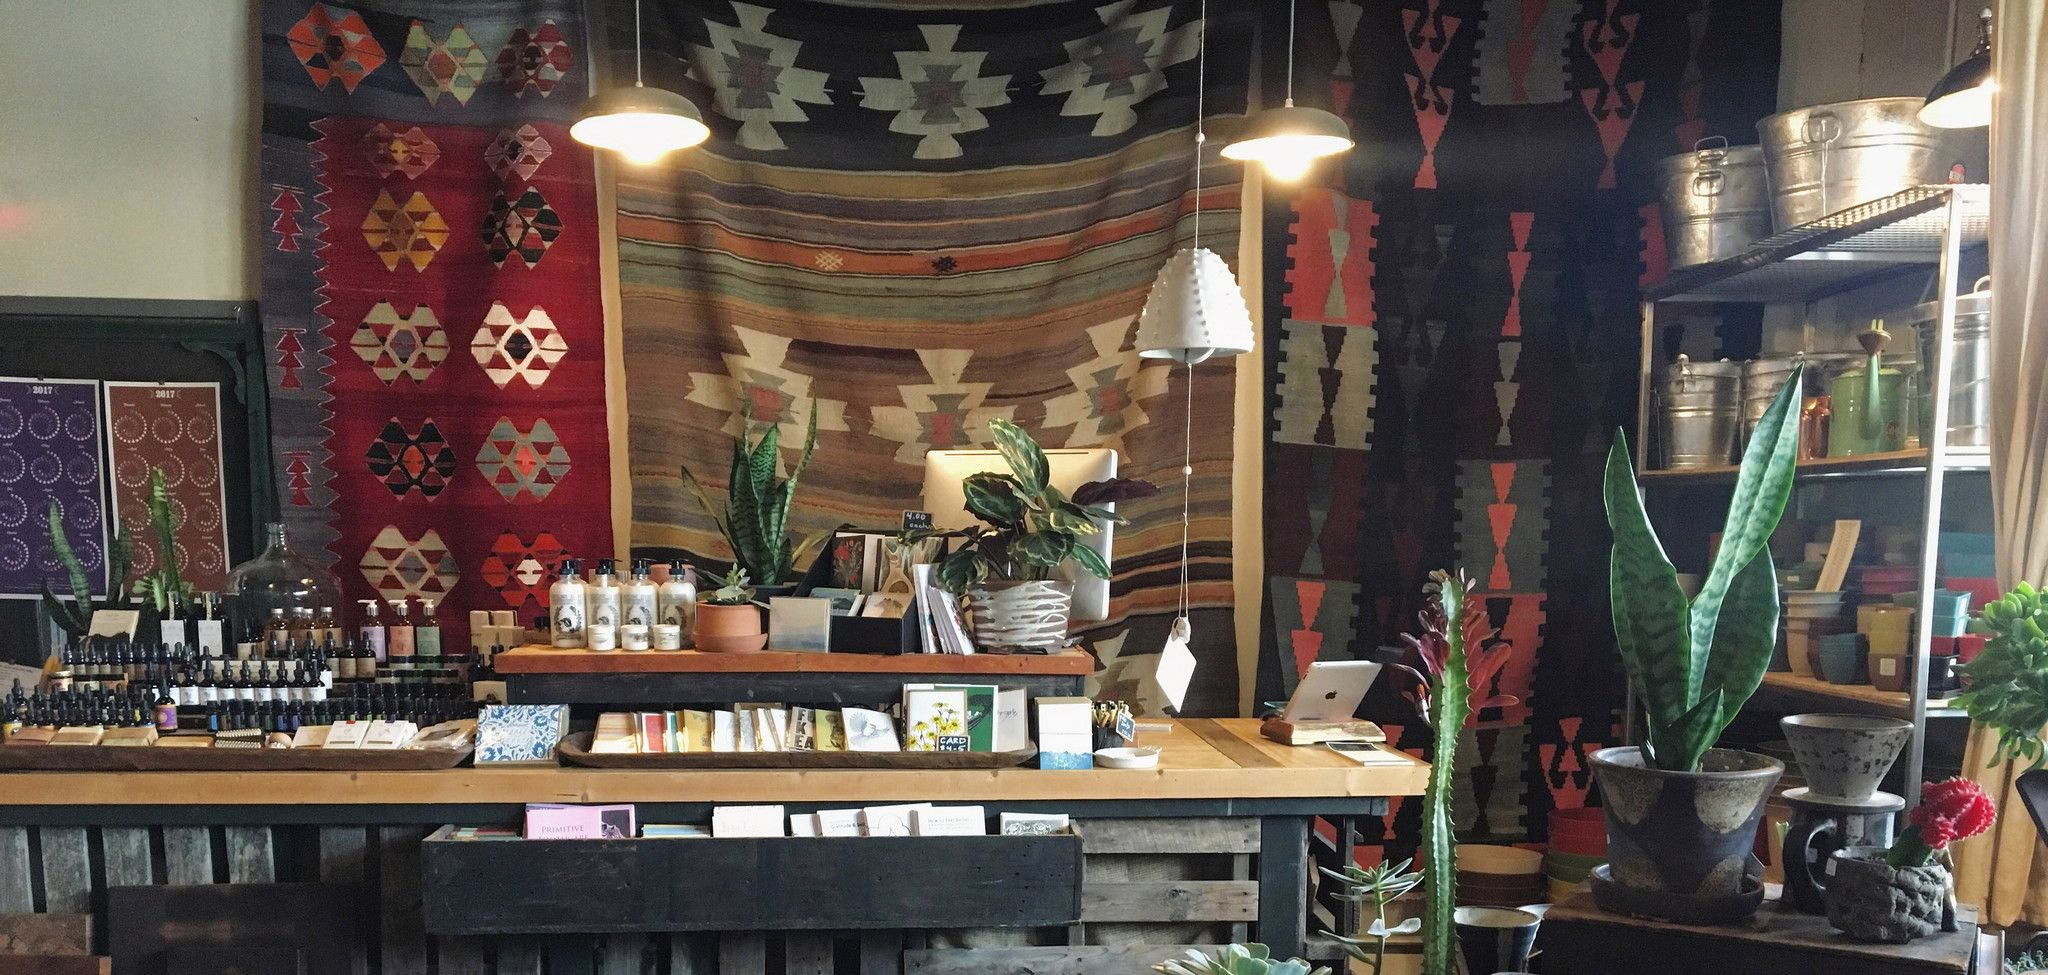 Villagers urban homestead supply online store located in Asheville ...